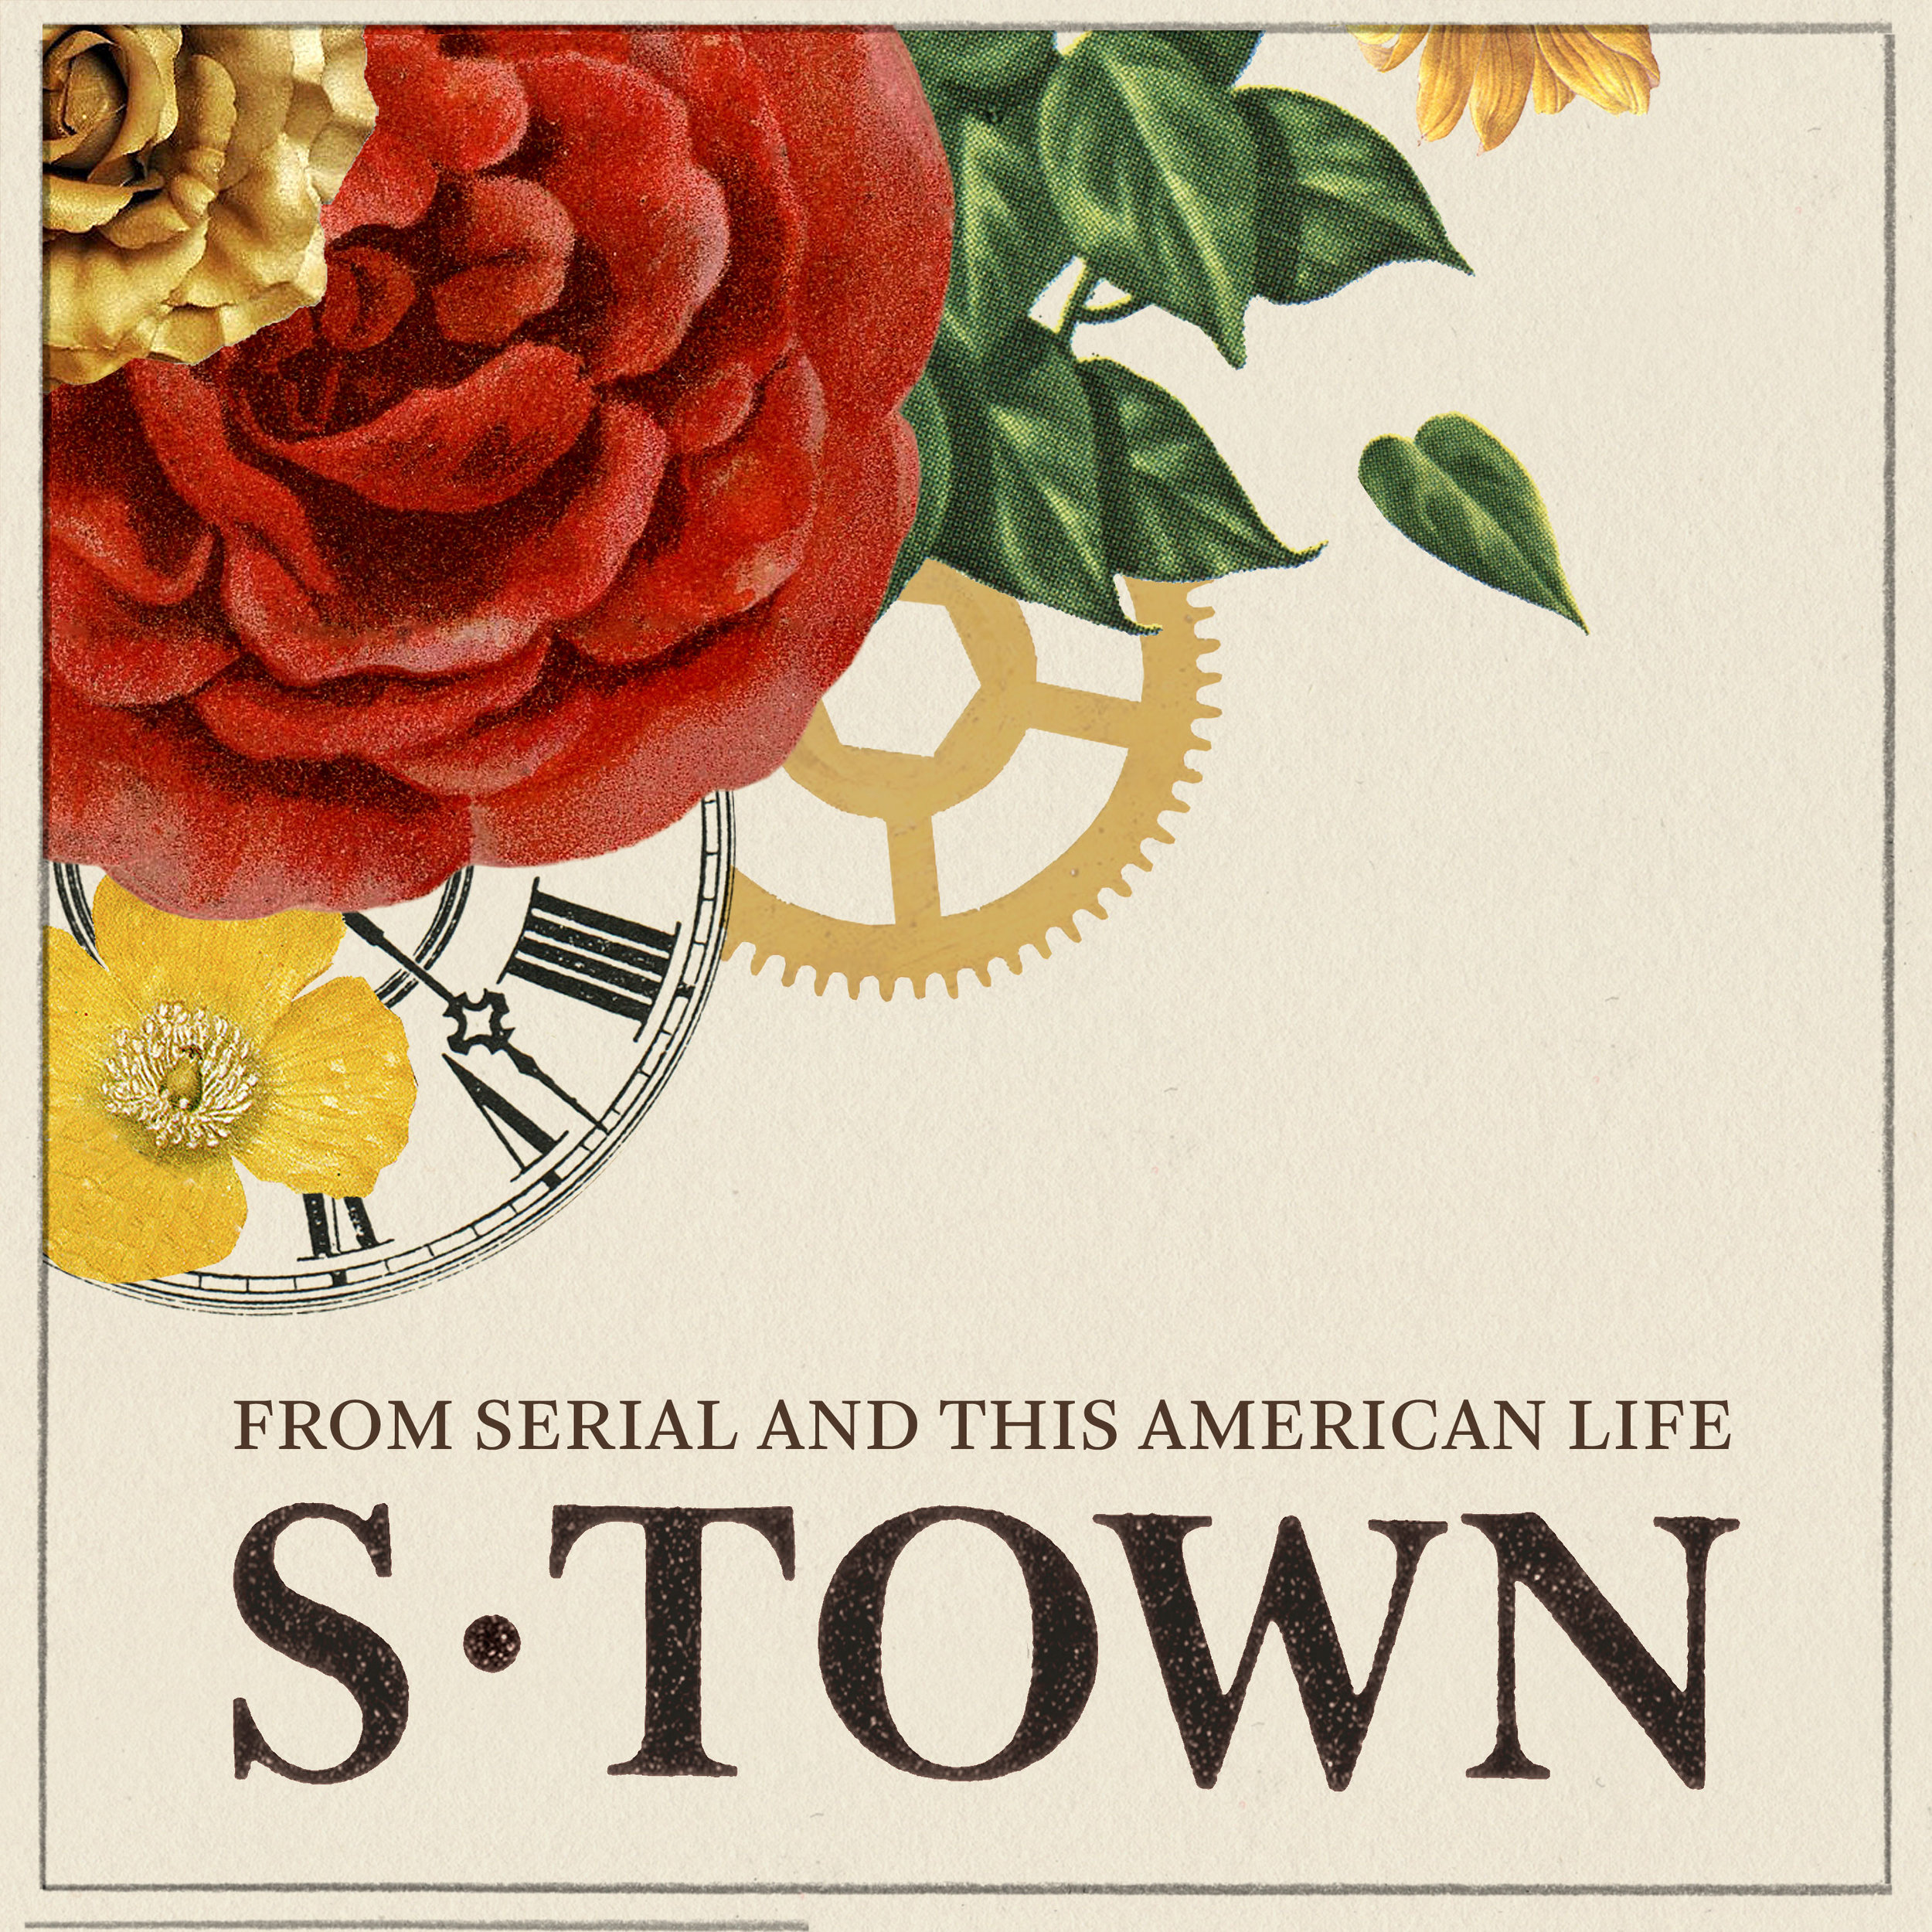 S-Town - One of the most popular podcasts of all time. The online synopsis gives the best description without giving too much away--